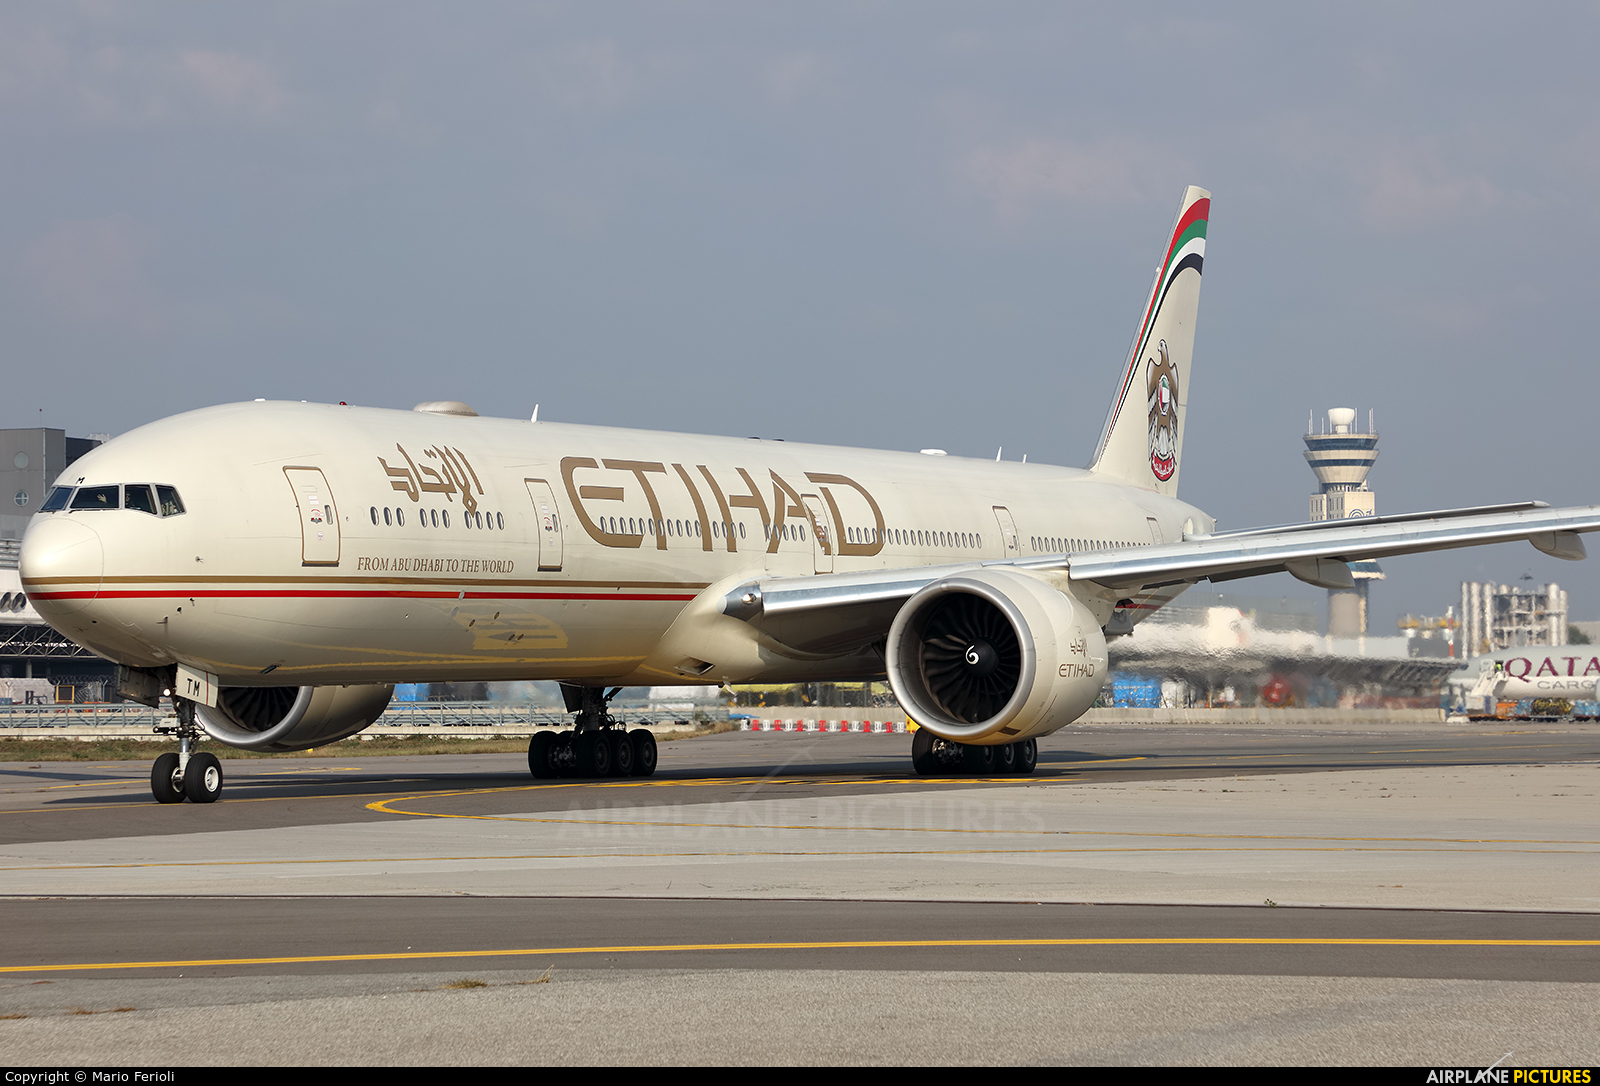 Etihad Airways A6-ETM aircraft at Milan - Malpensa